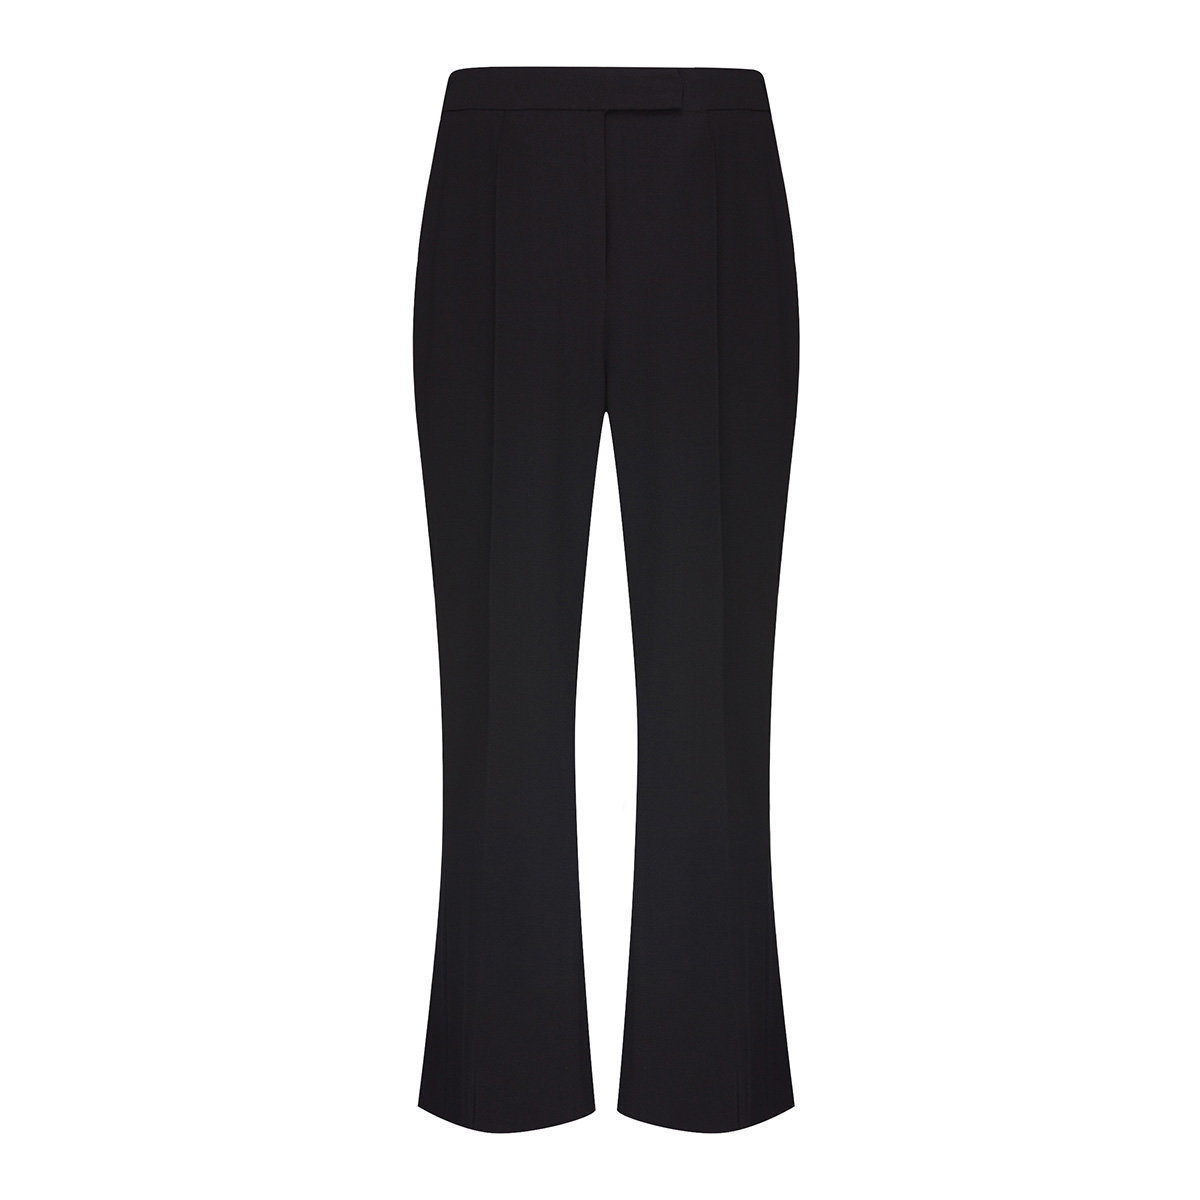 Women's Culottes with Back Slit (Black)